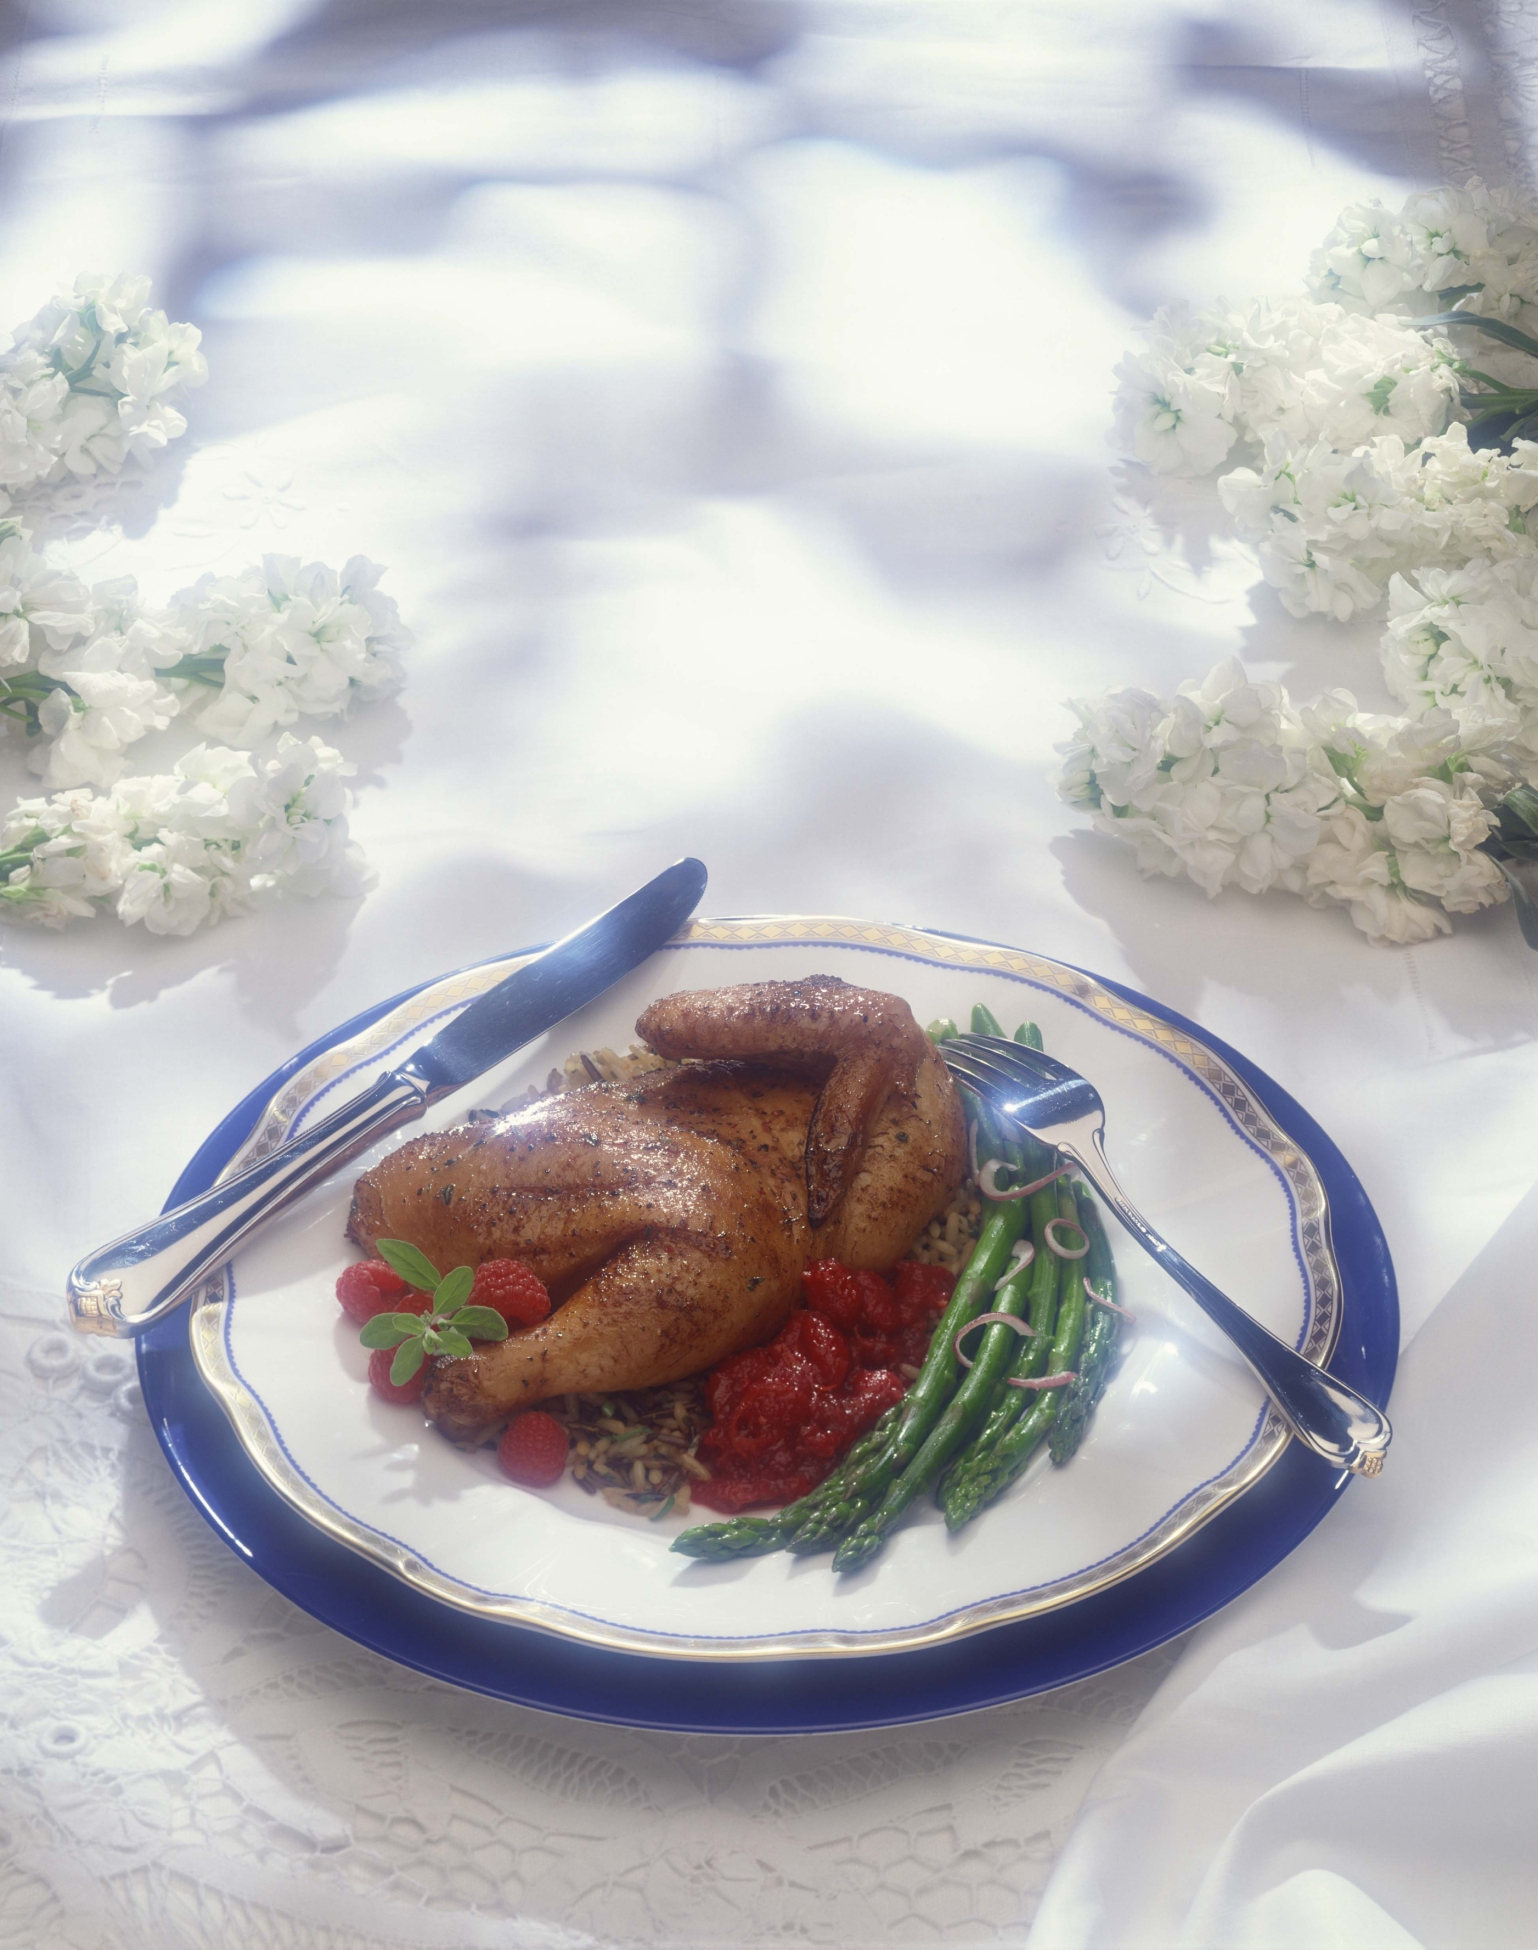 Raspberry sauce enhances meats and poultry.